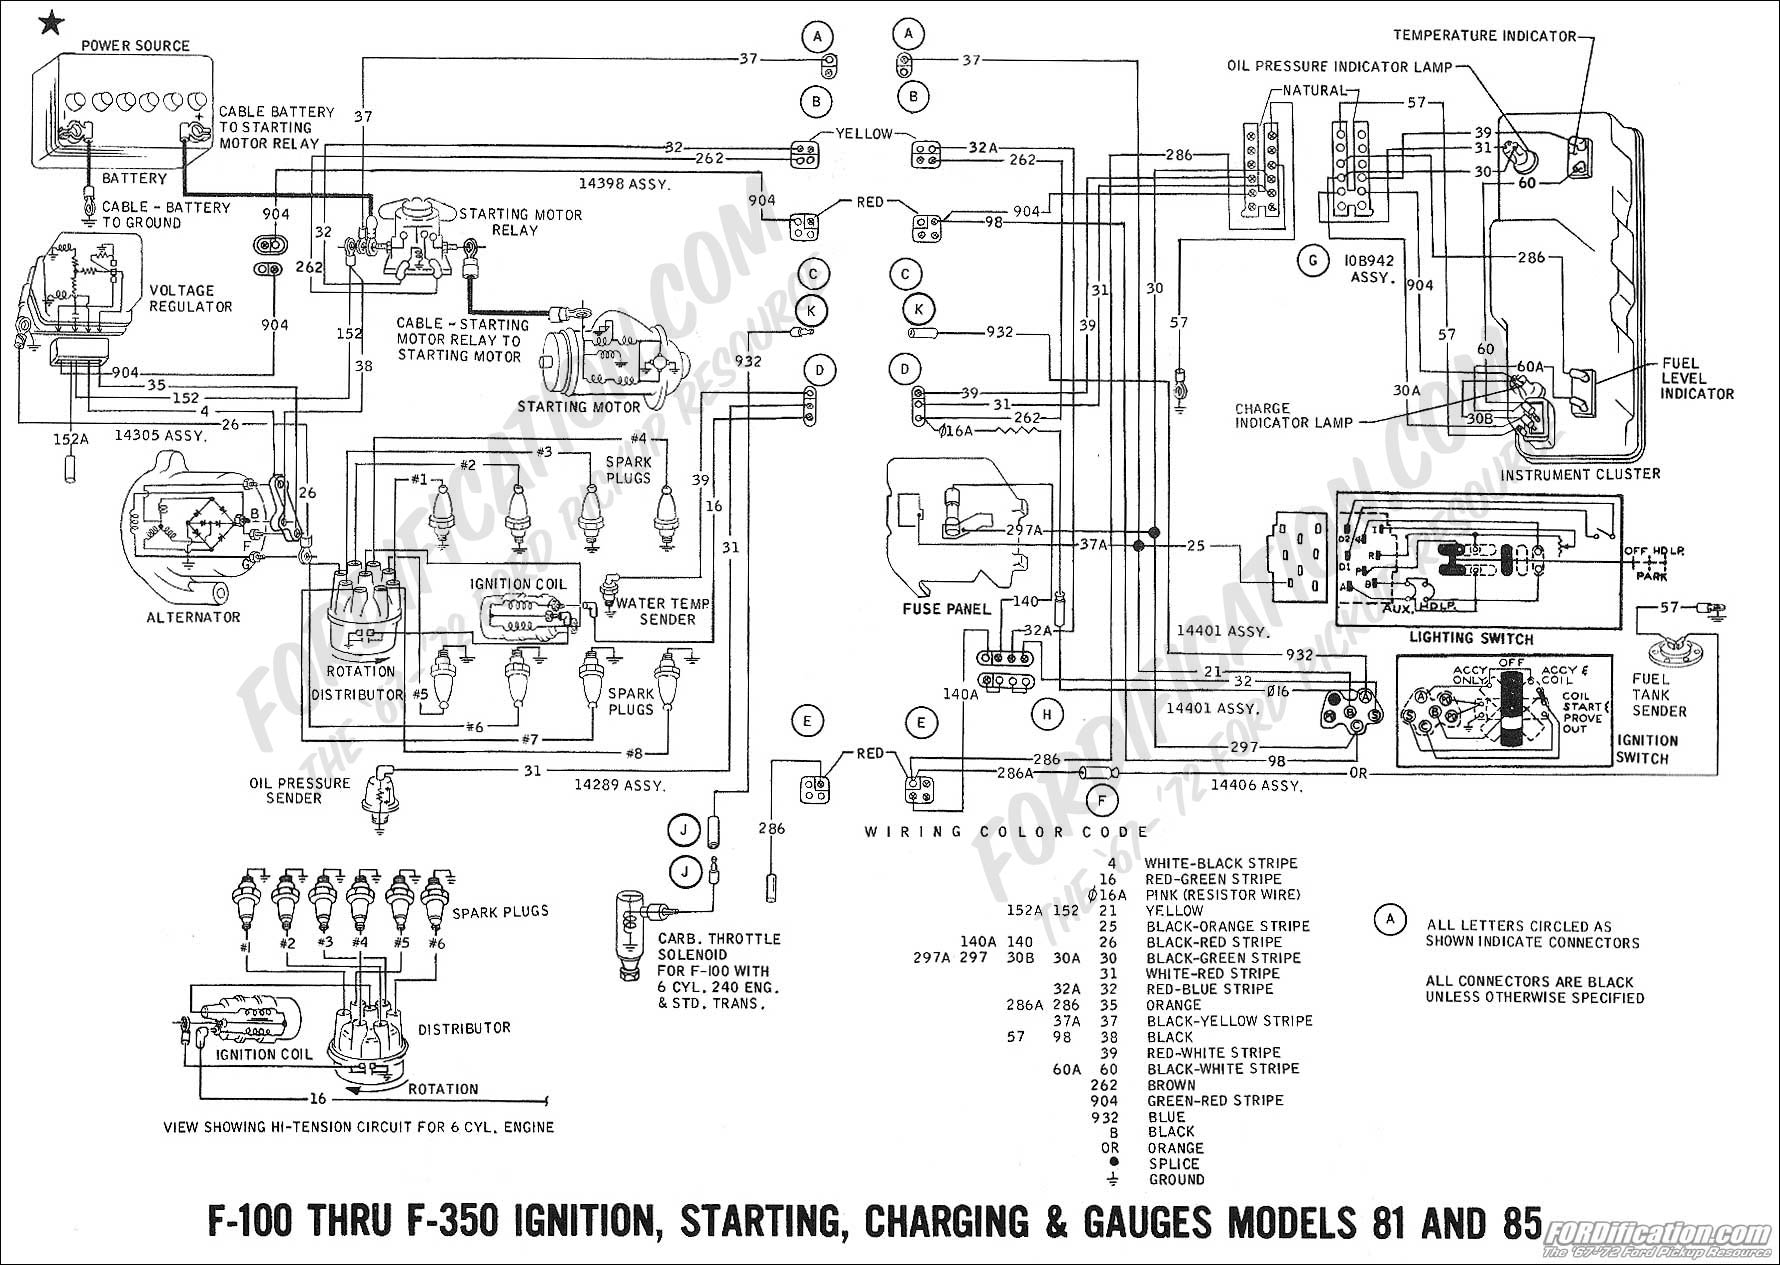 ford truck wiring harness wiring diagram 1972 Ford Thunderbird Wiring Diagram 78 ford f 150 wiring harness wiring diagram78 ford f 250 wiring color code 9 16 danishfashion mode de \\\\u202278 ford f 250 wiring color code wiring diagram